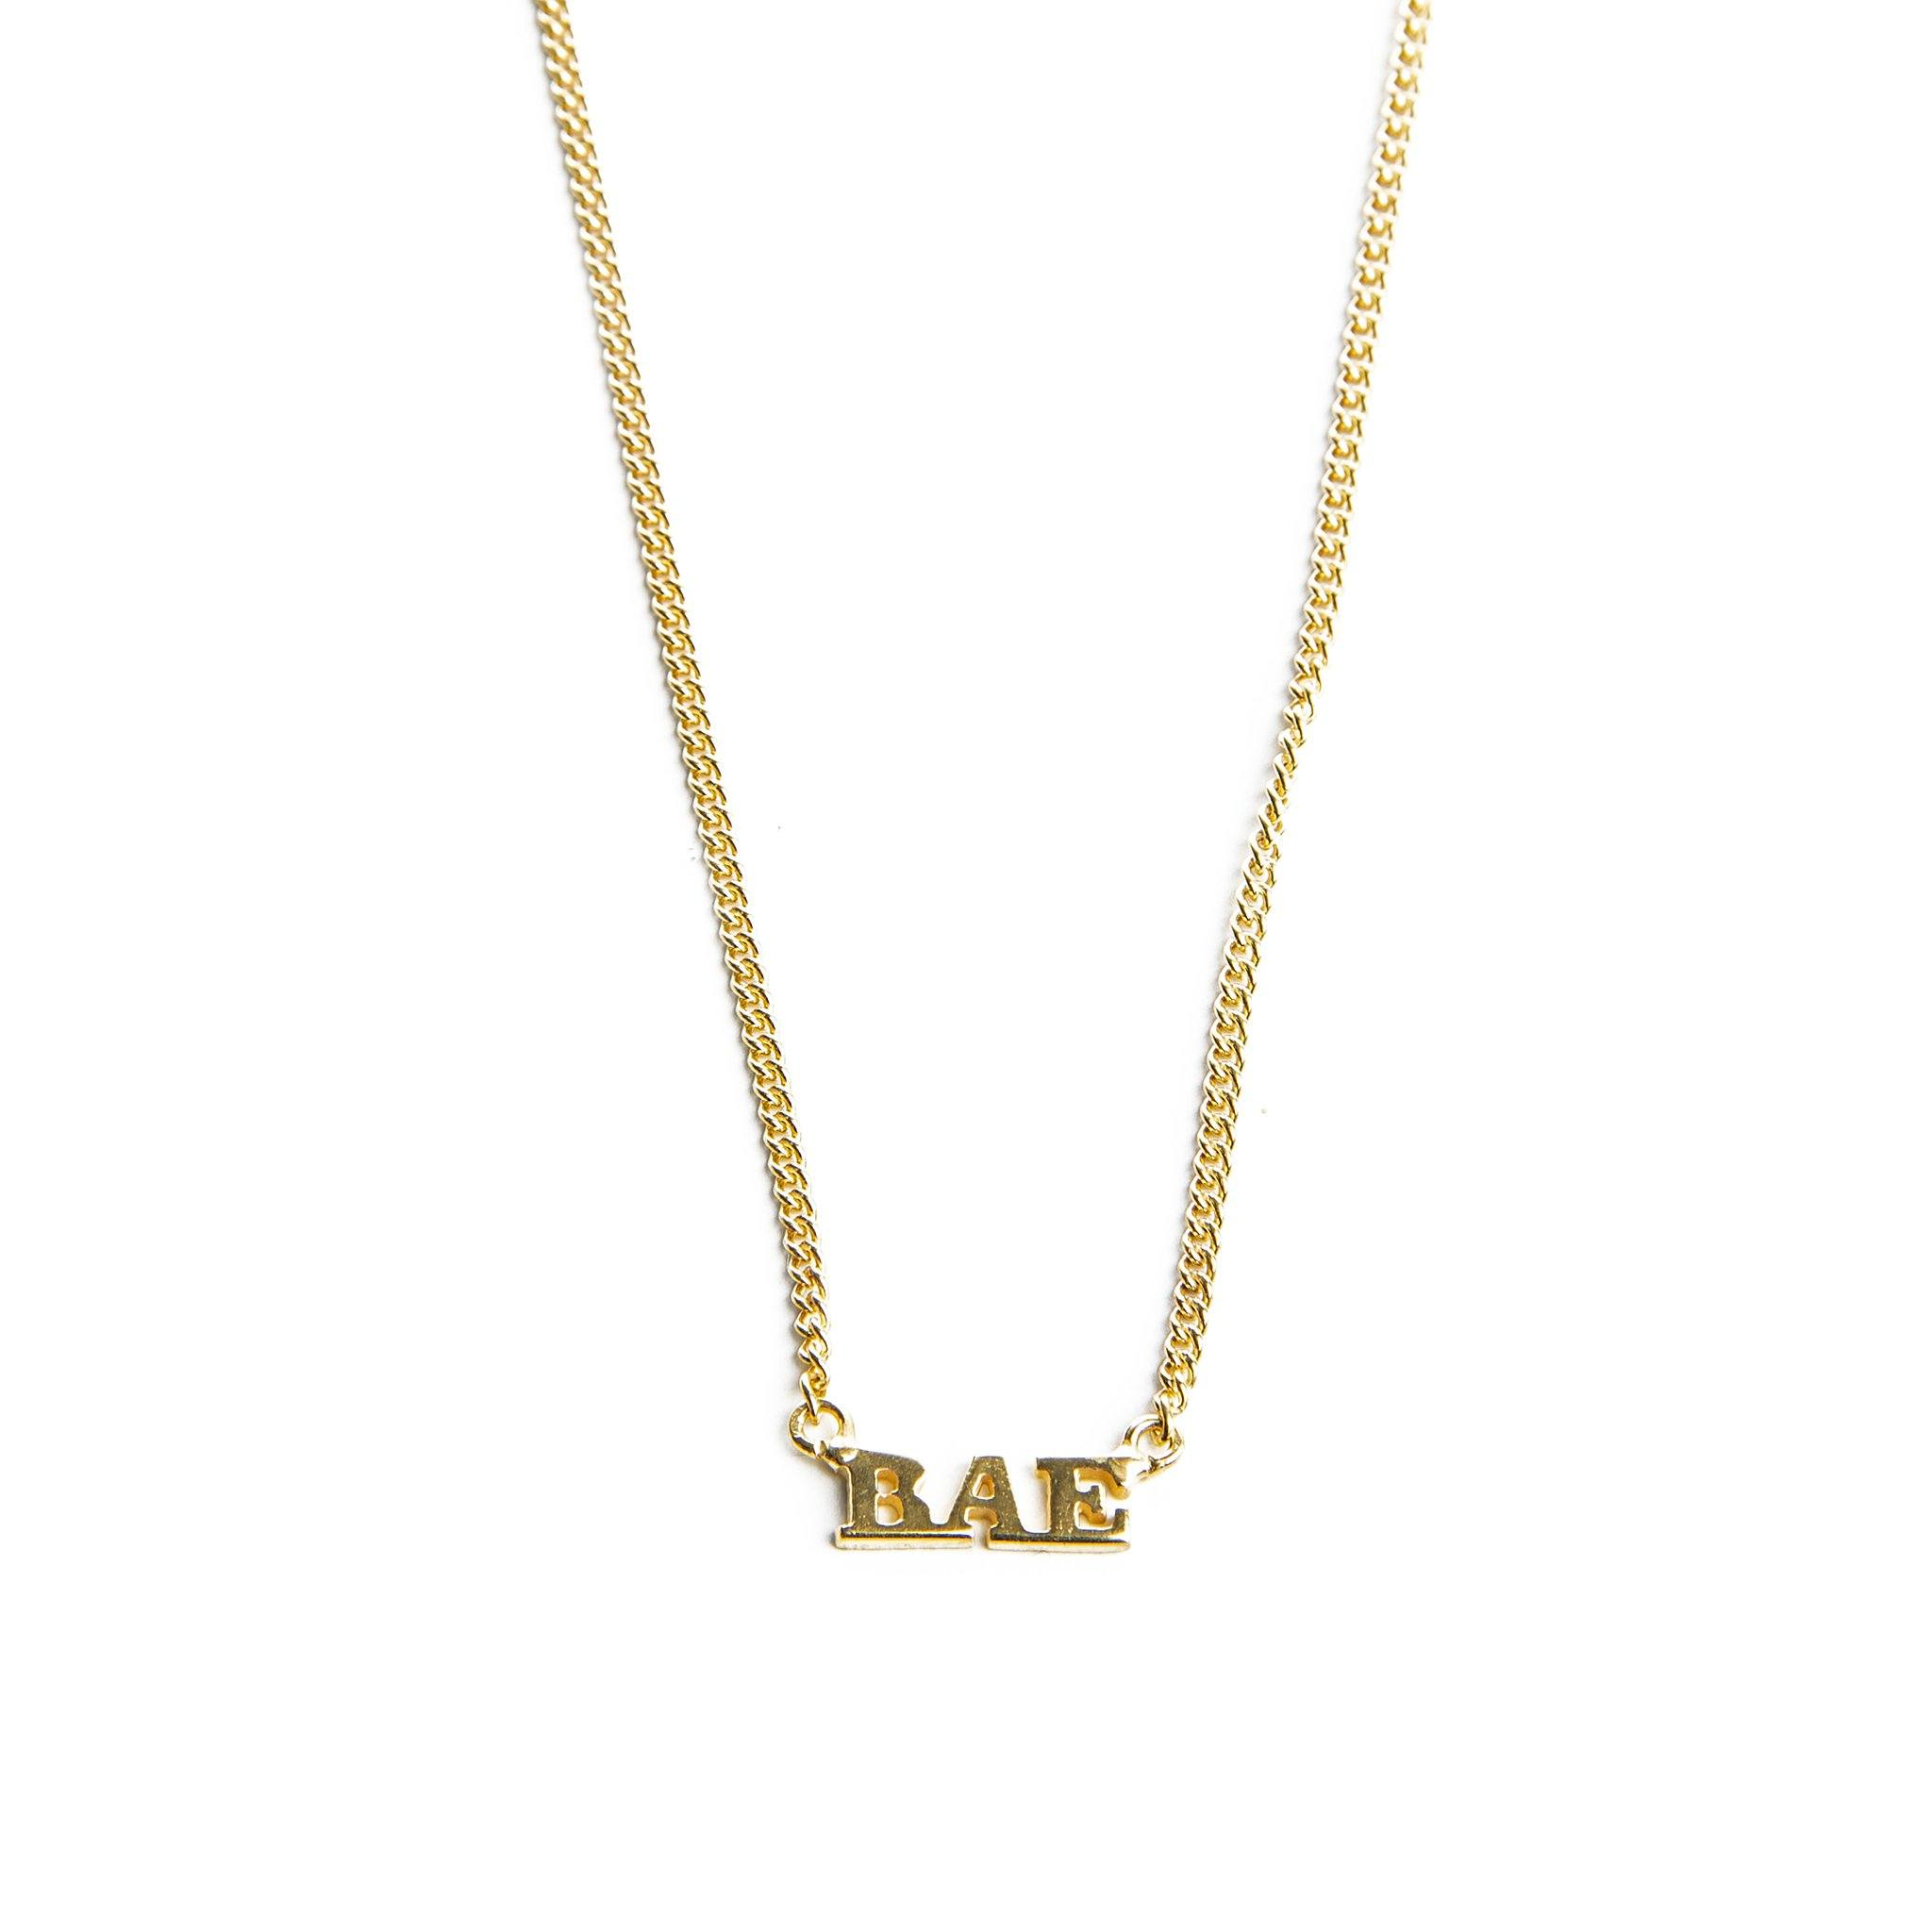 BAE necklace